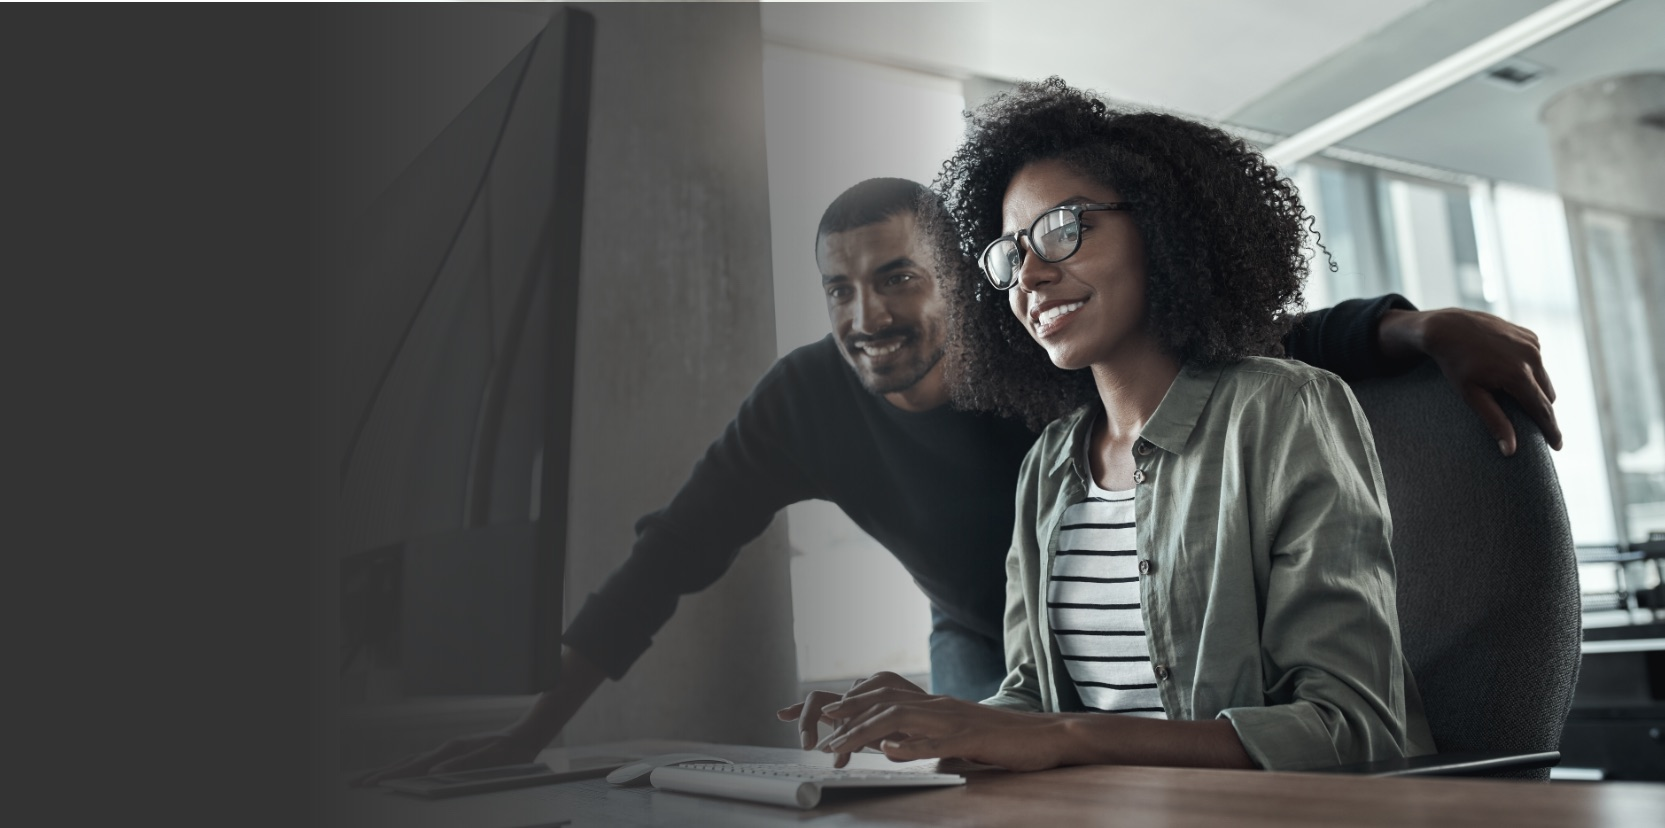 African American man and woman smiling looking at computer